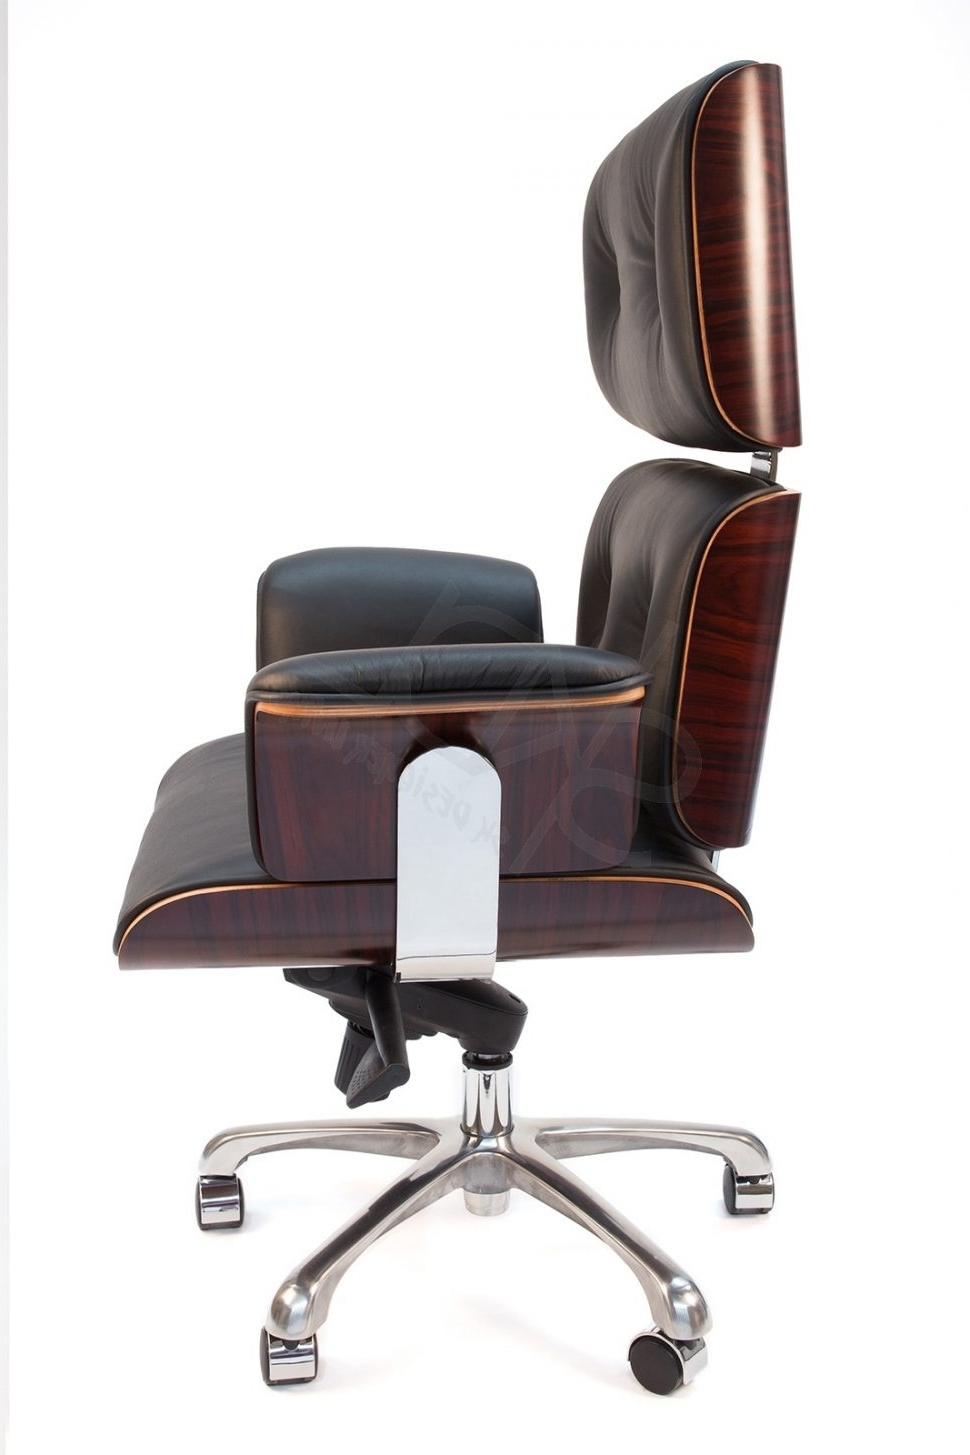 Executive Office Chairs Without Wheels Intended For Current Furniture : Leather Office Furniture Best Home Office Chair Wooden (Gallery 5 of 20)